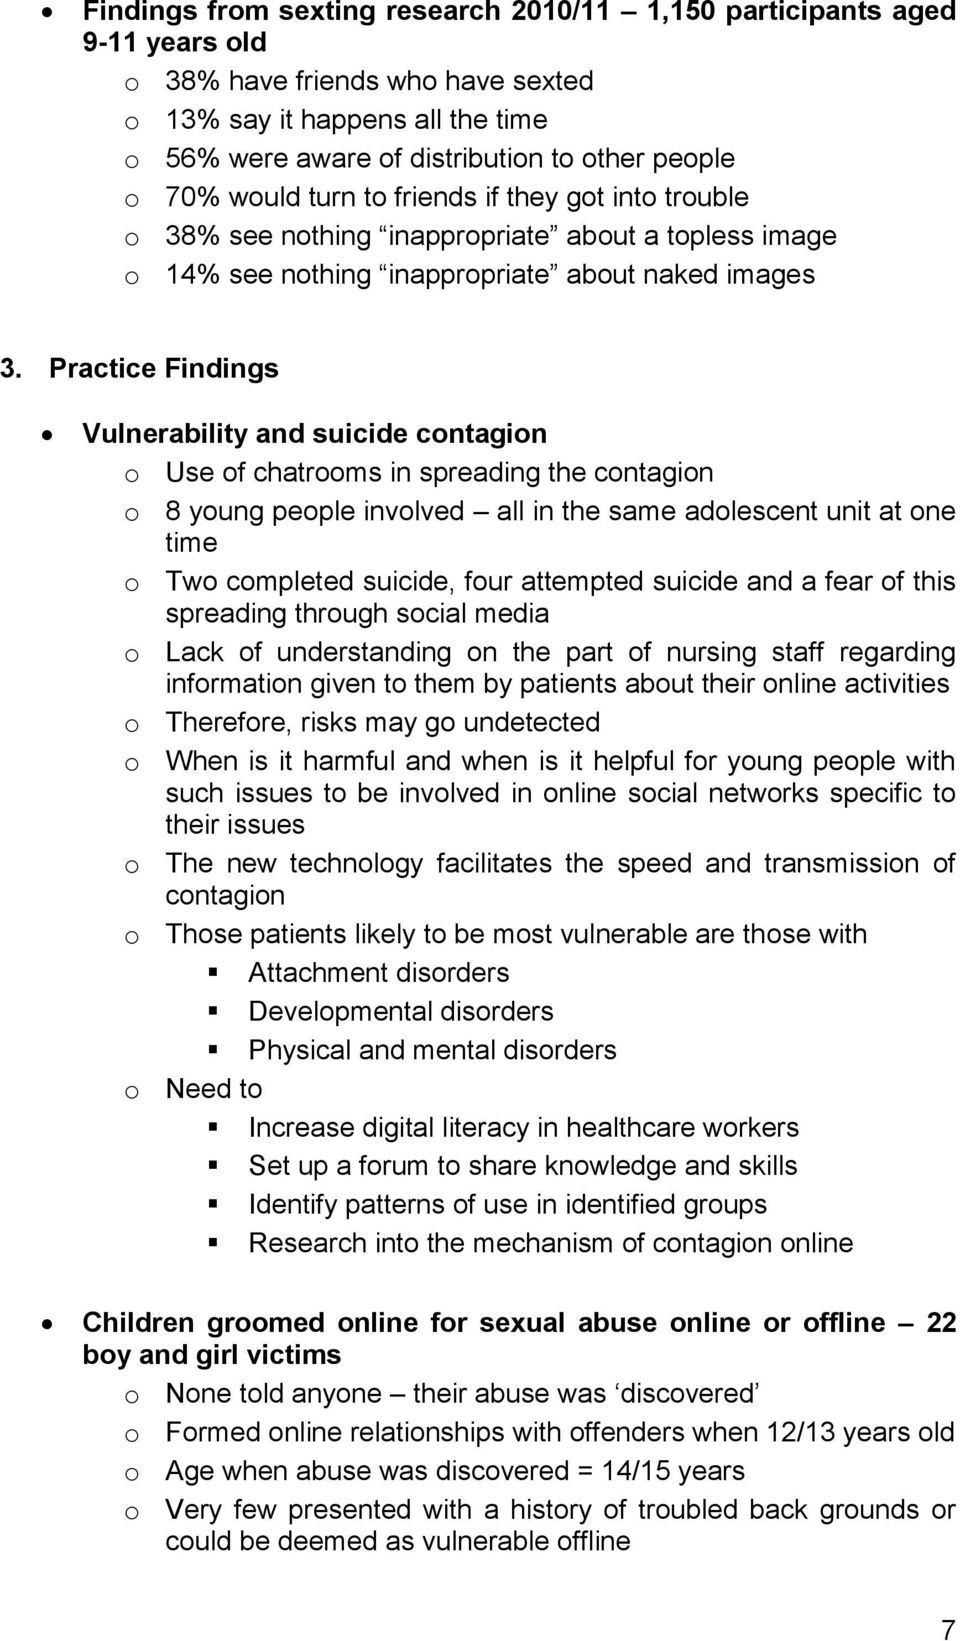 Practice Findings Vulnerability and suicide contagion o Use of chatrooms in spreading the contagion o 8 young people involved all in the same adolescent unit at one time o Two completed suicide, four